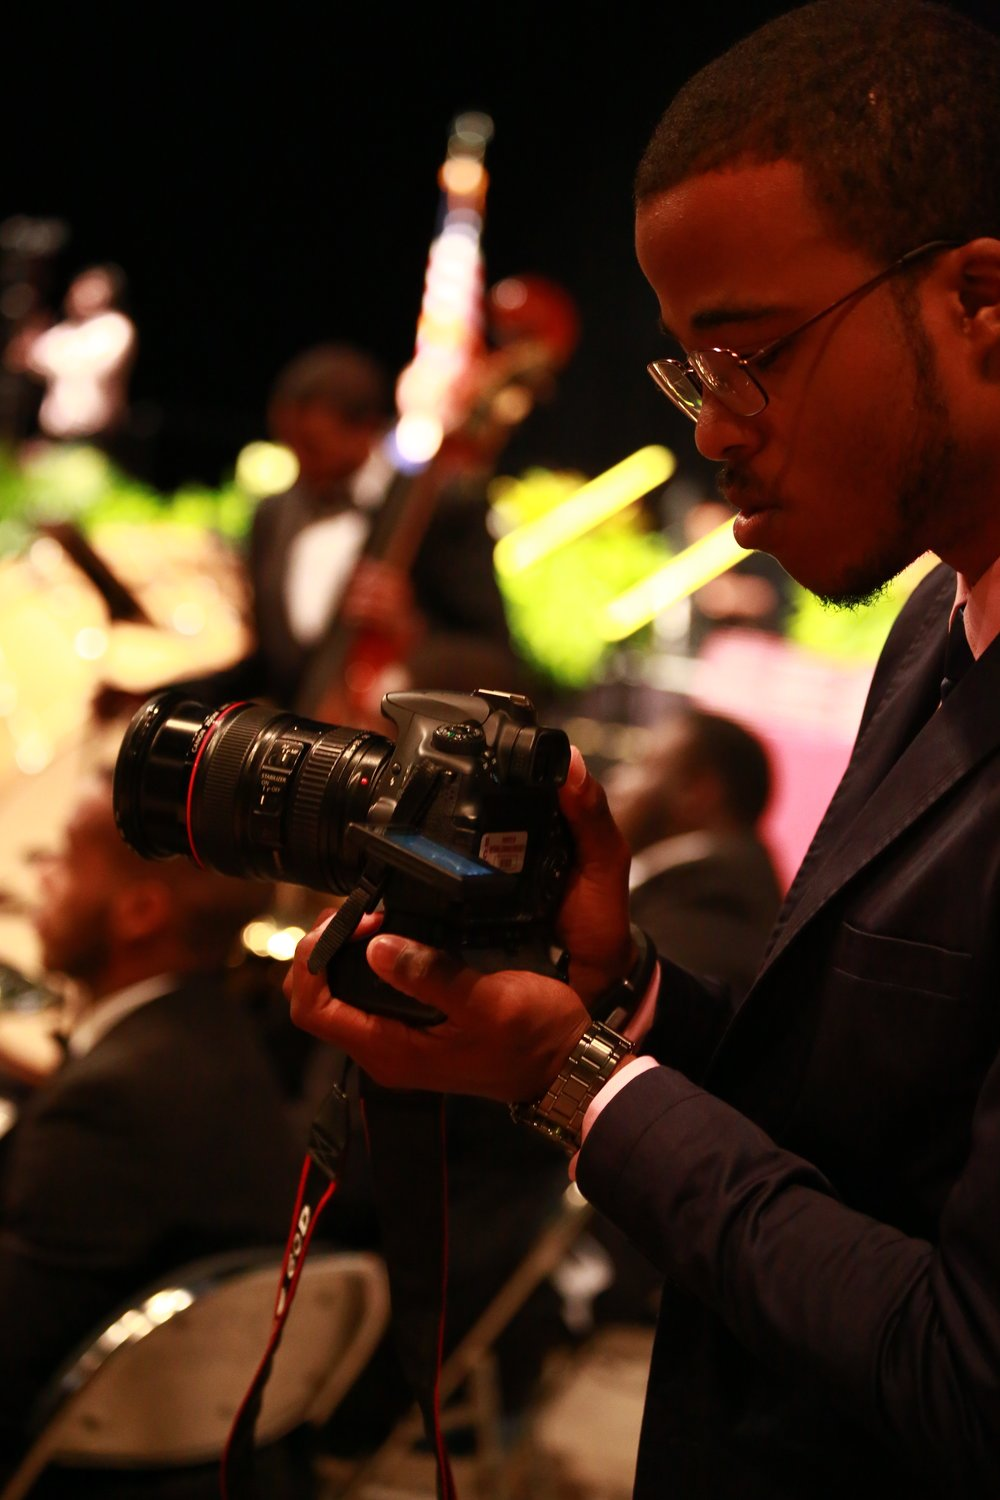 Terrence Shooting footage for University Graduation in Florida. Photo by B Focus Studios.